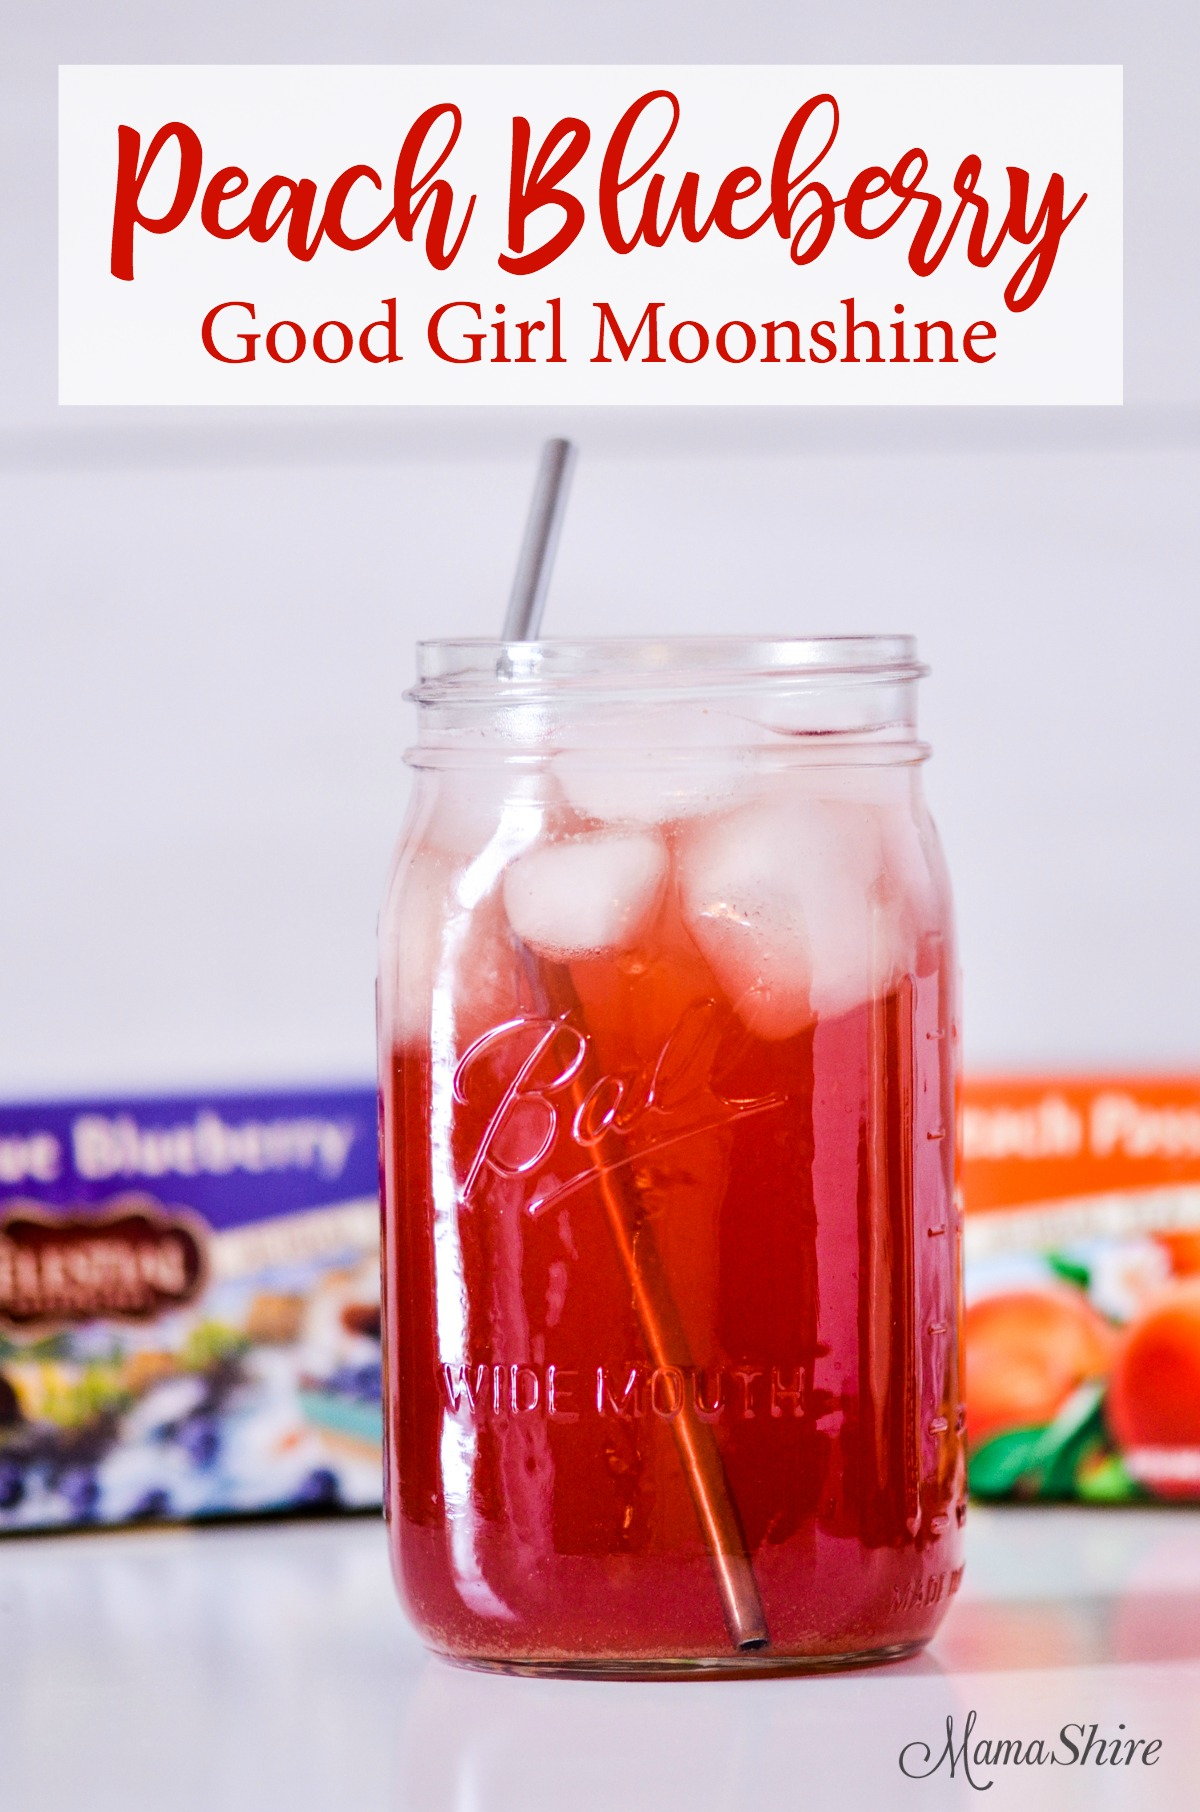 Peach Blueberry Good Girl Moonshine